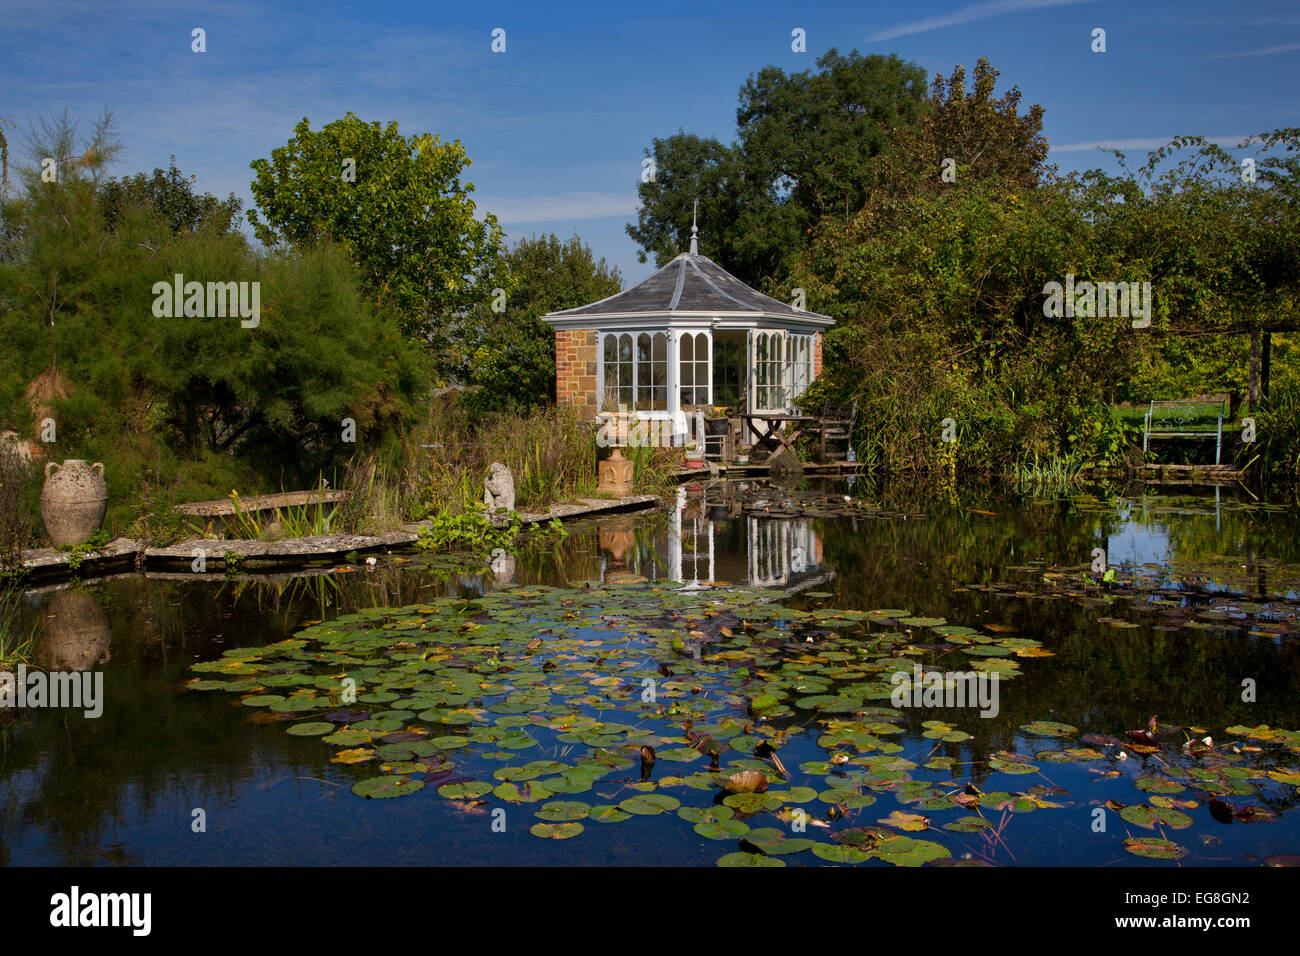 Large garden pond in summer with brick summerhouse and seating overlooking water and water lilles,Garden,Oxfordshire,England - Stock Image